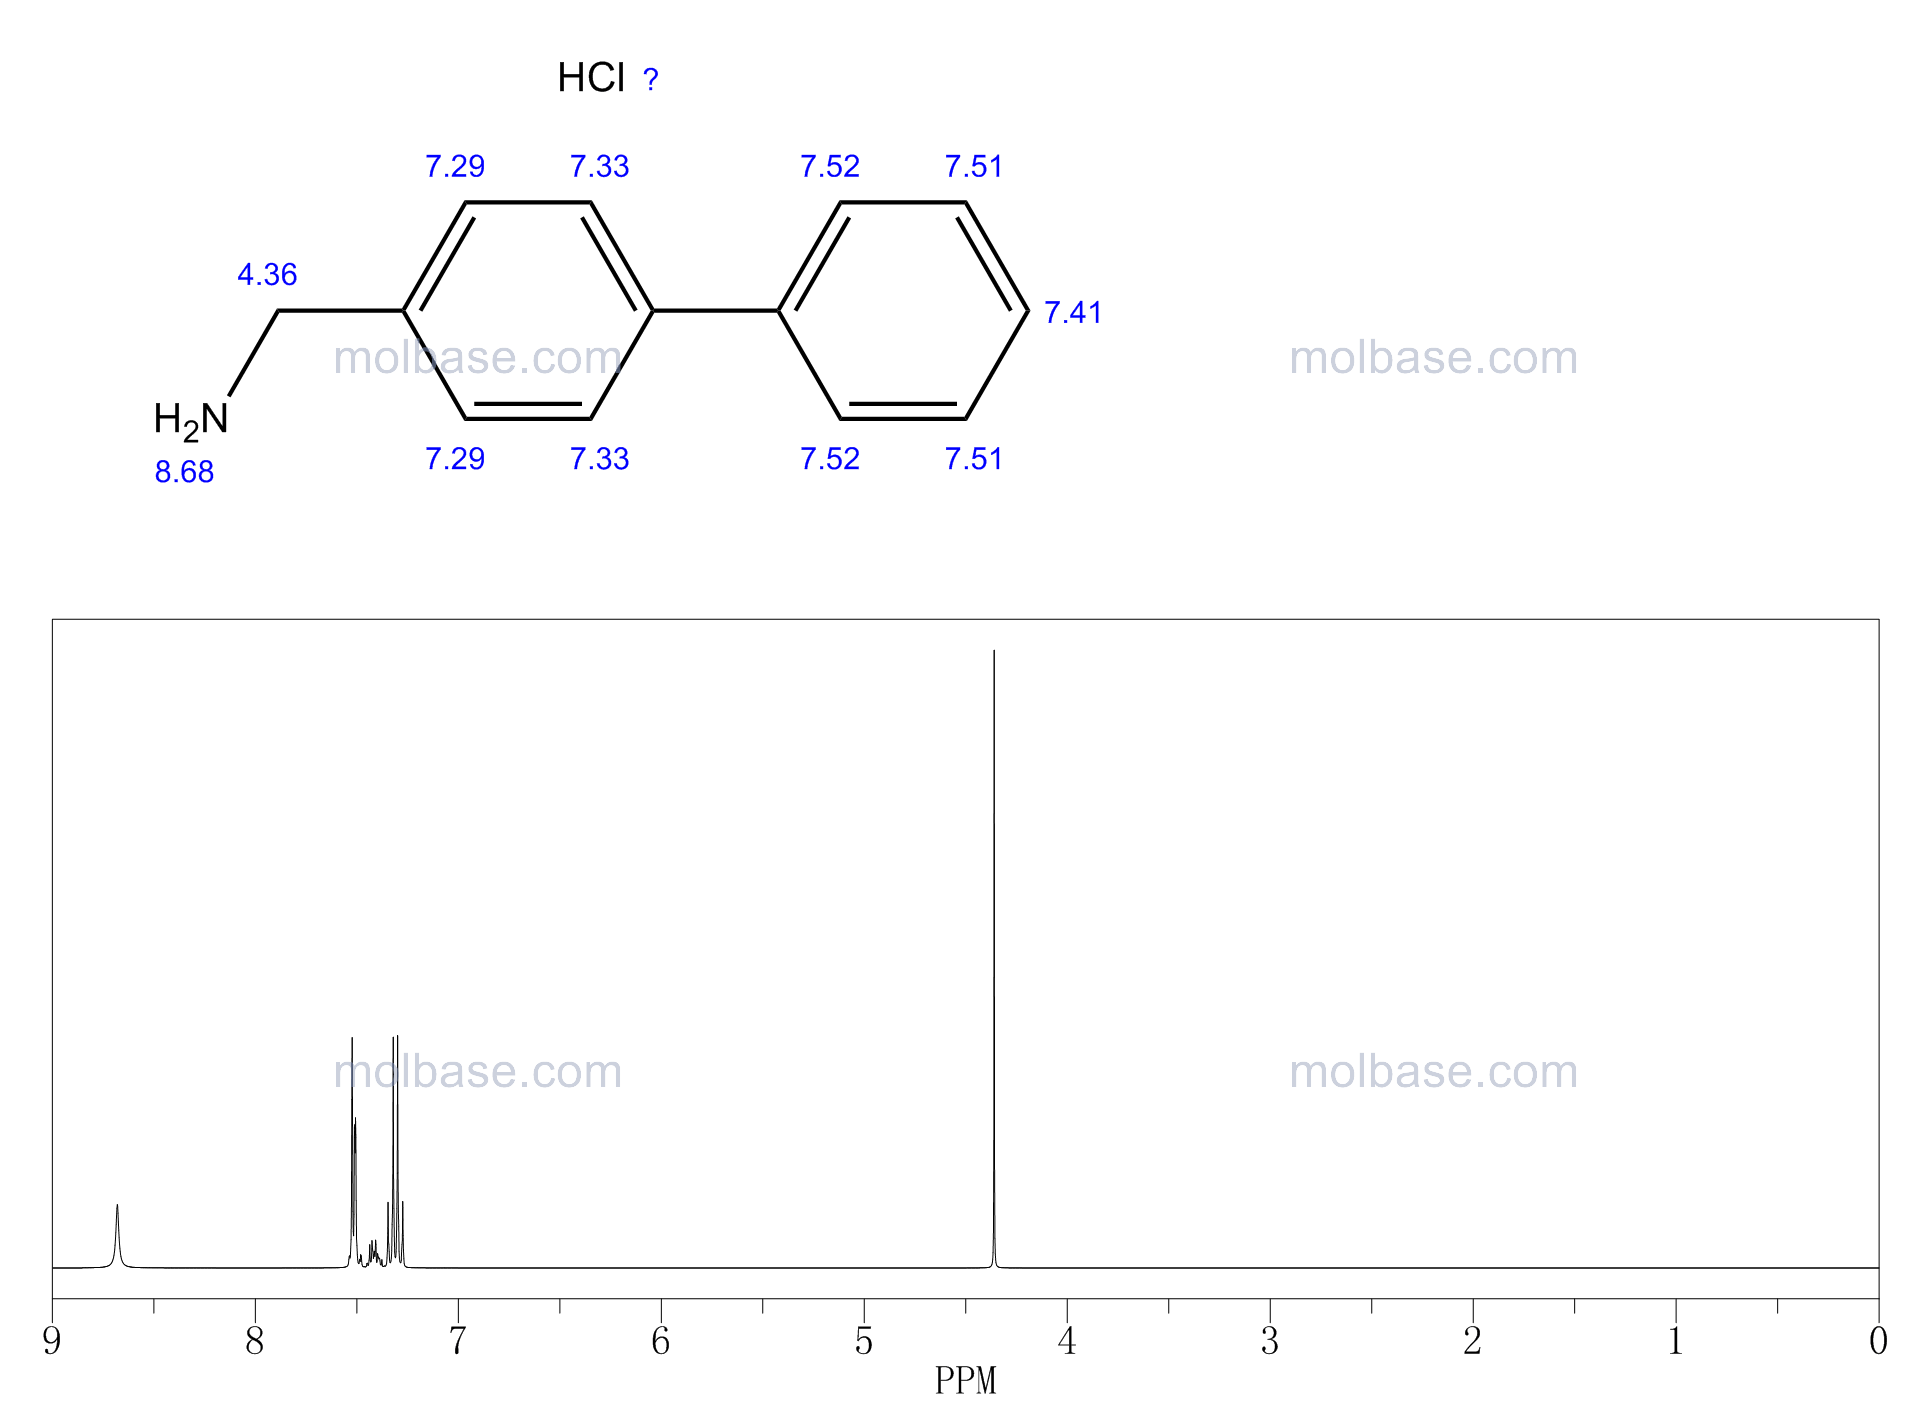 (4-phenylphenyl)methanamine,hydrochloride NMR spectra analysis, Chemical CAS NO. 238428-24-5 NMR spectral analysis, (4-phenylphenyl)methanamine,hydrochloride C-NMR spectrum